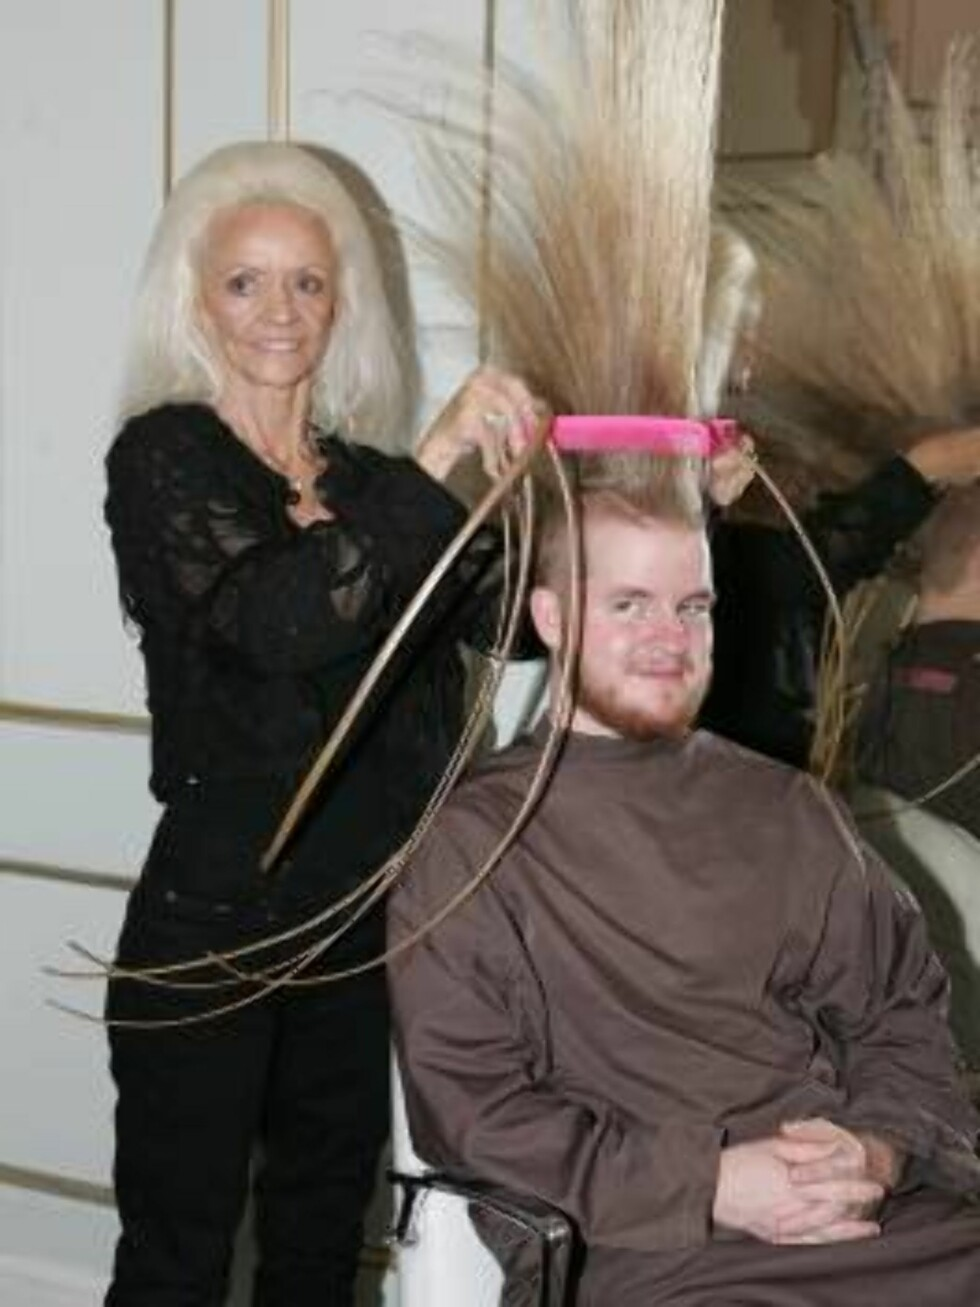 London 2006-09-28  Lee Redmond, 65, from Utah and 16-year-old Aaron Studham from Massachussetts, have both grown a part of their body to world extreme lengths and quality for an entry in  the 2007 edition of Guiness World Records. Lee has been growing her Foto: Stella Pictures